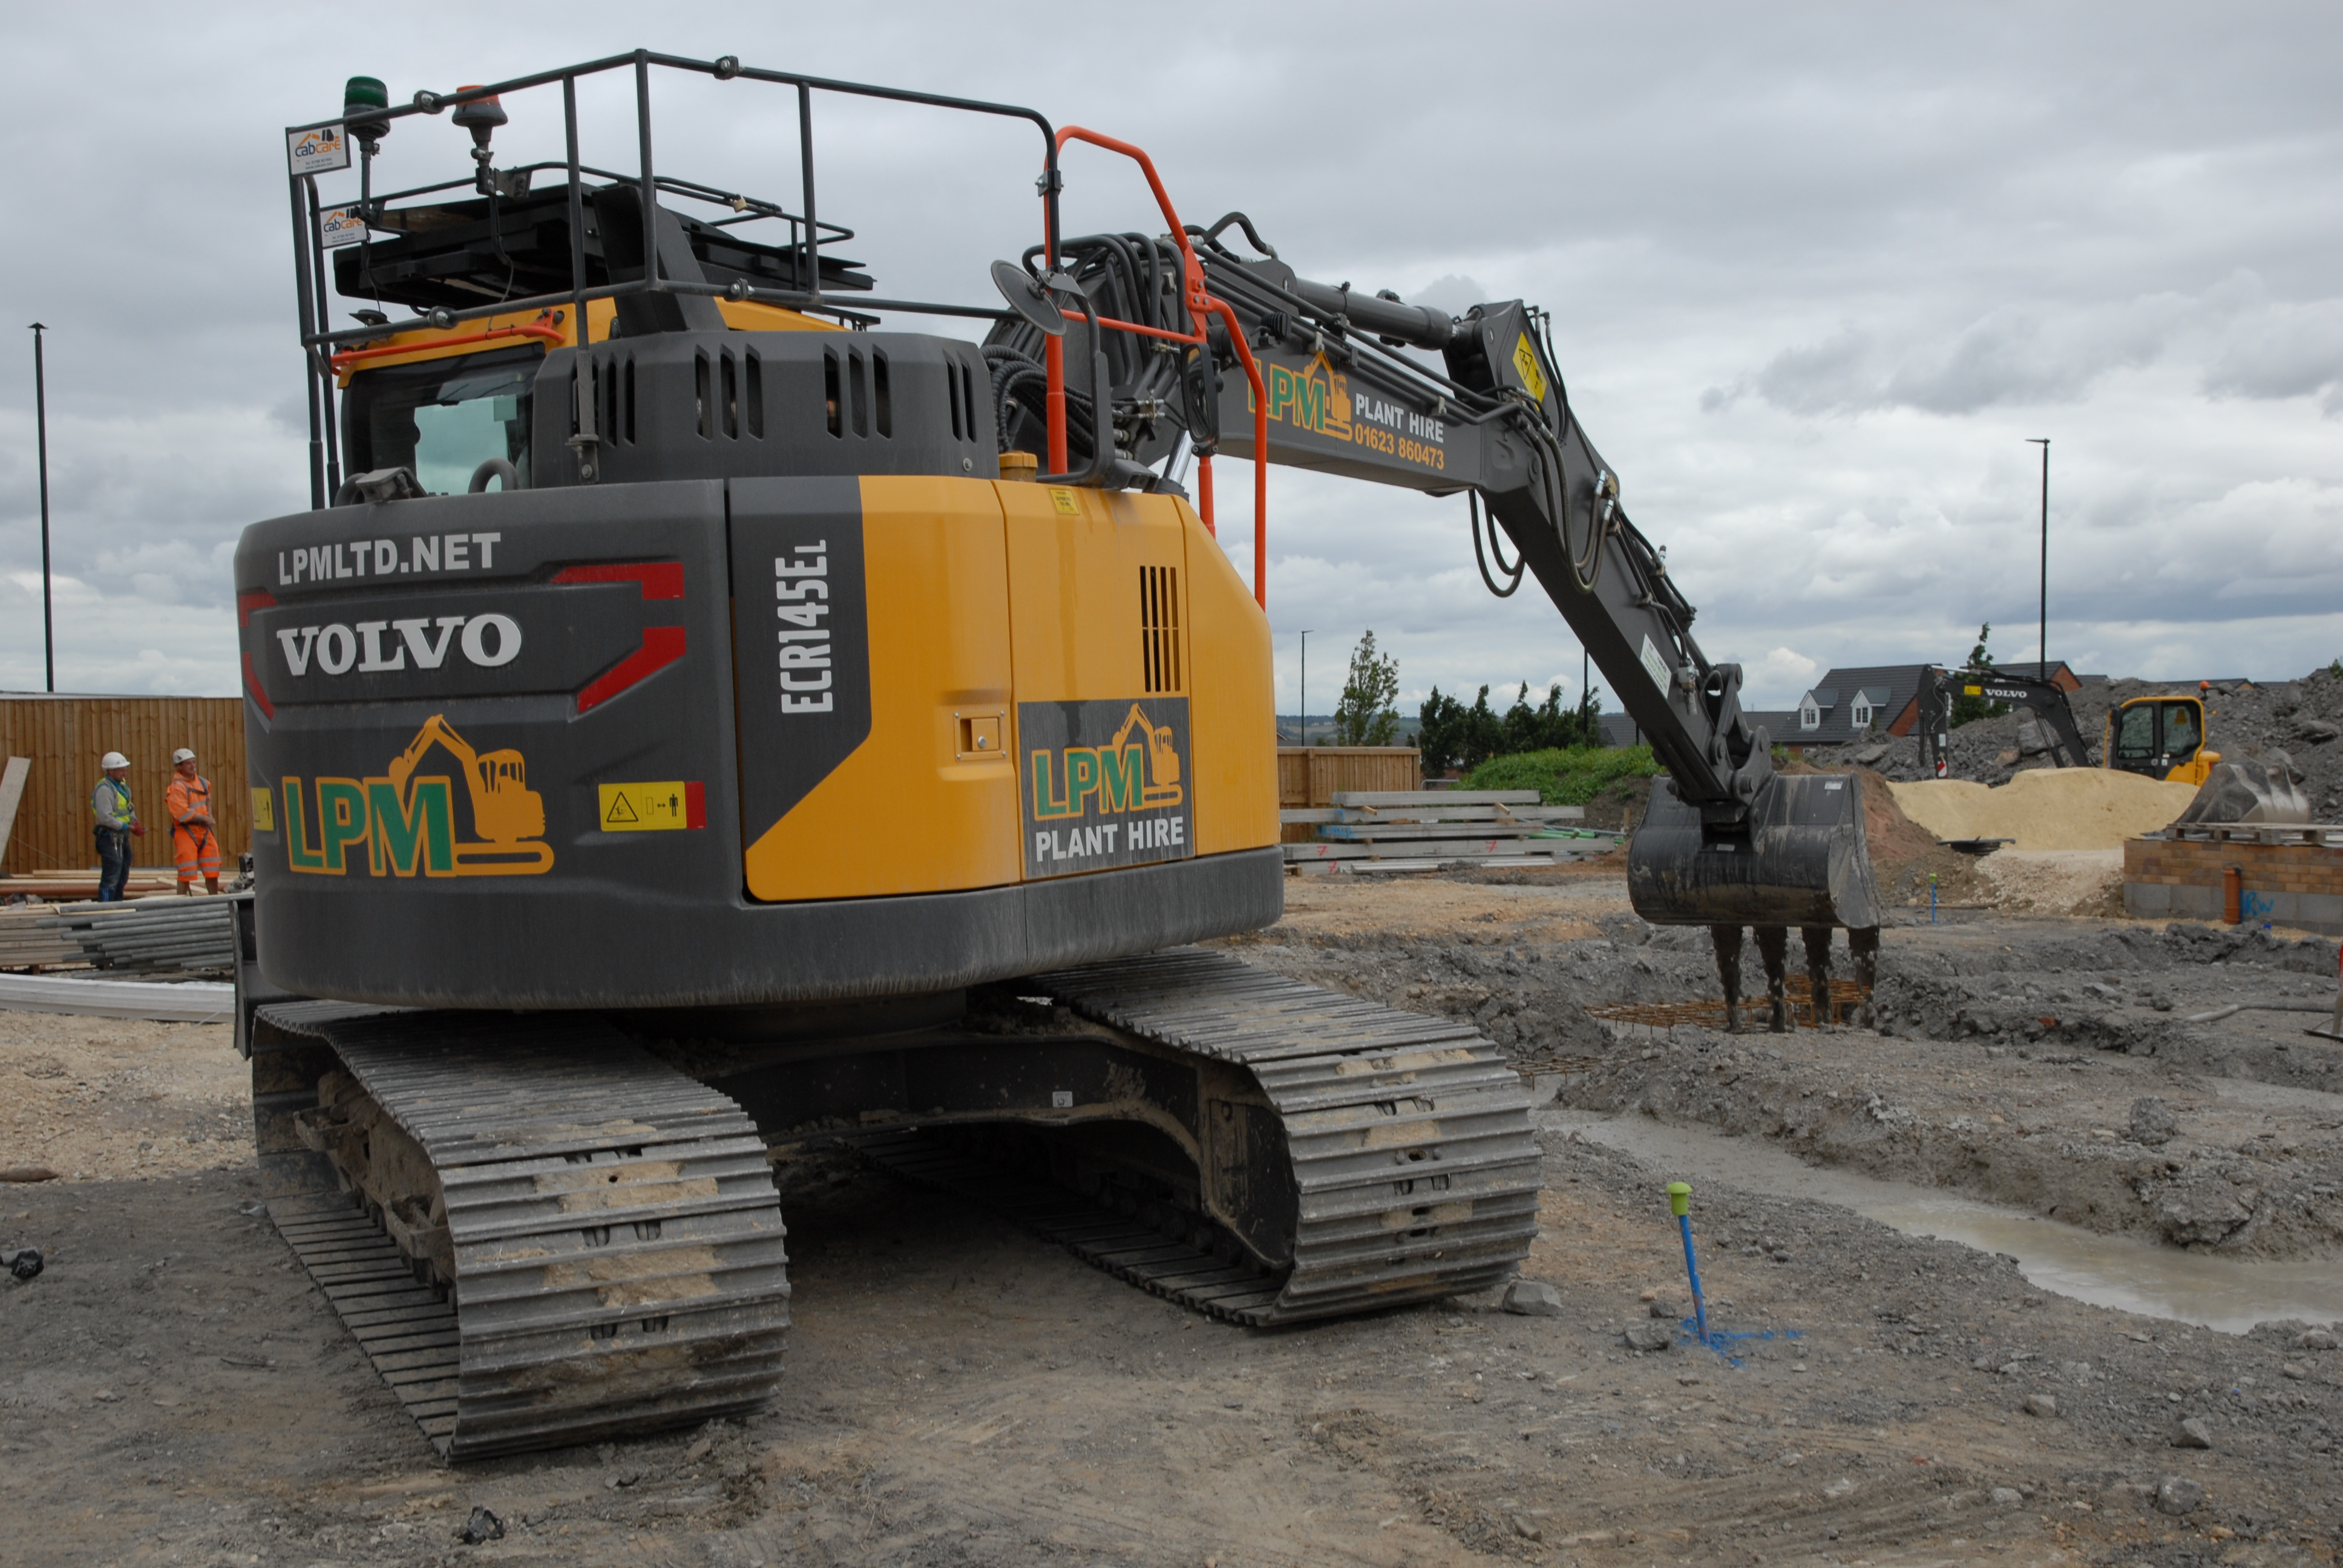 LPM Plant Hire & Sales Ltd steps up a gear with larger Volvo